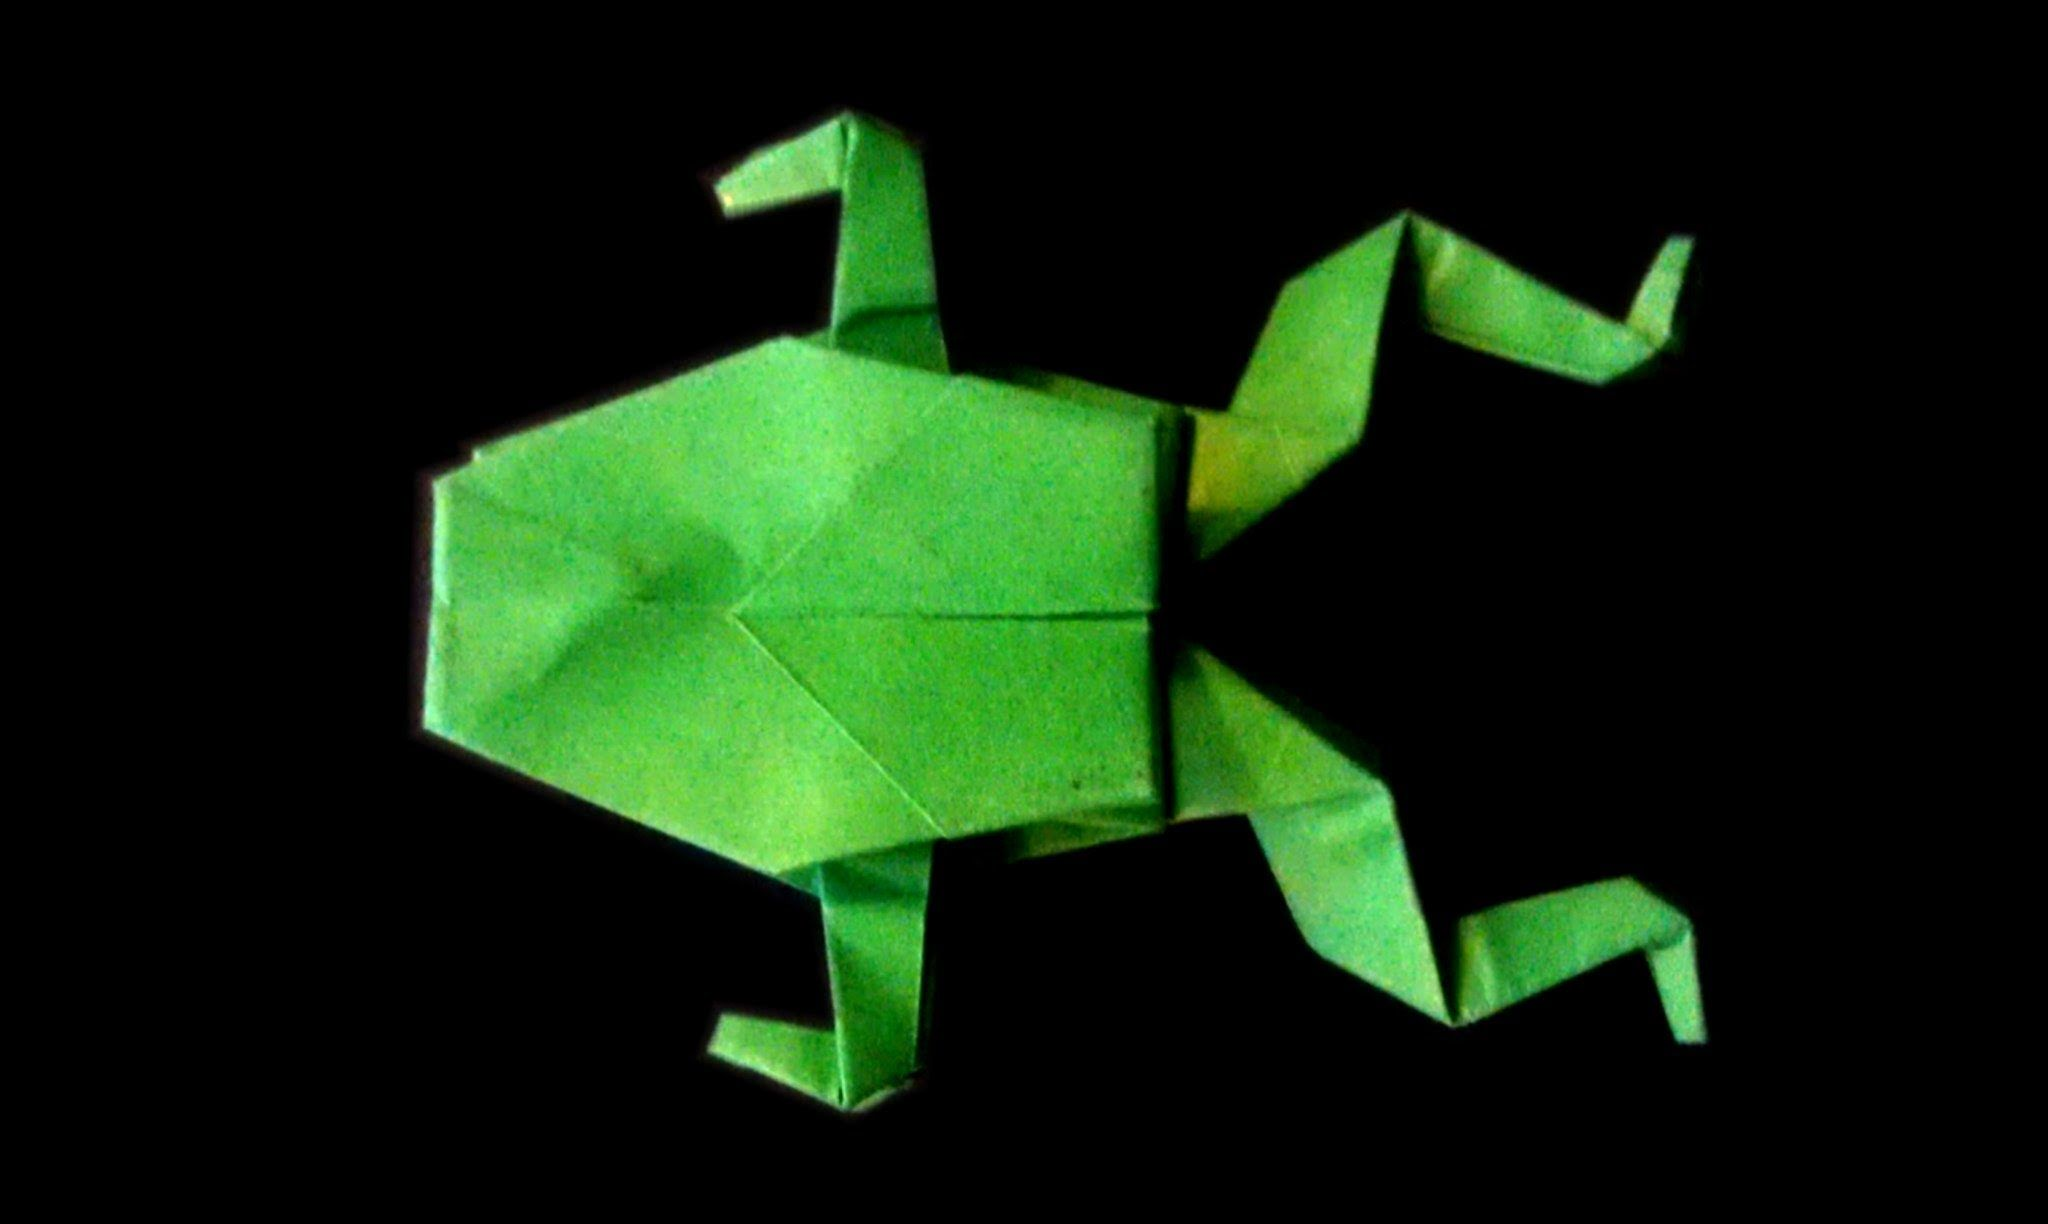 Easy step by step tutorial on how to make origami frog subscribe easy step by step tutorial on how to make origami frog subscribe jeuxipadfo Images